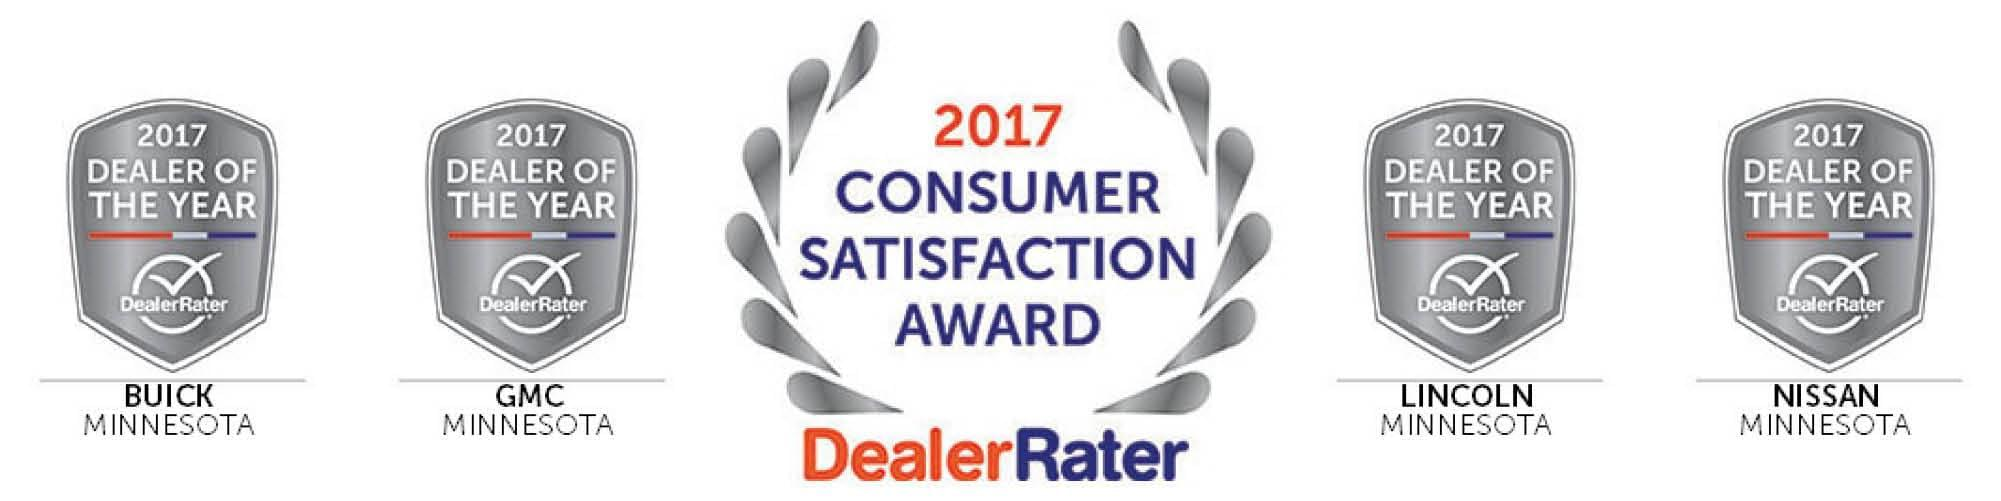 DealerRater_AwardBanner